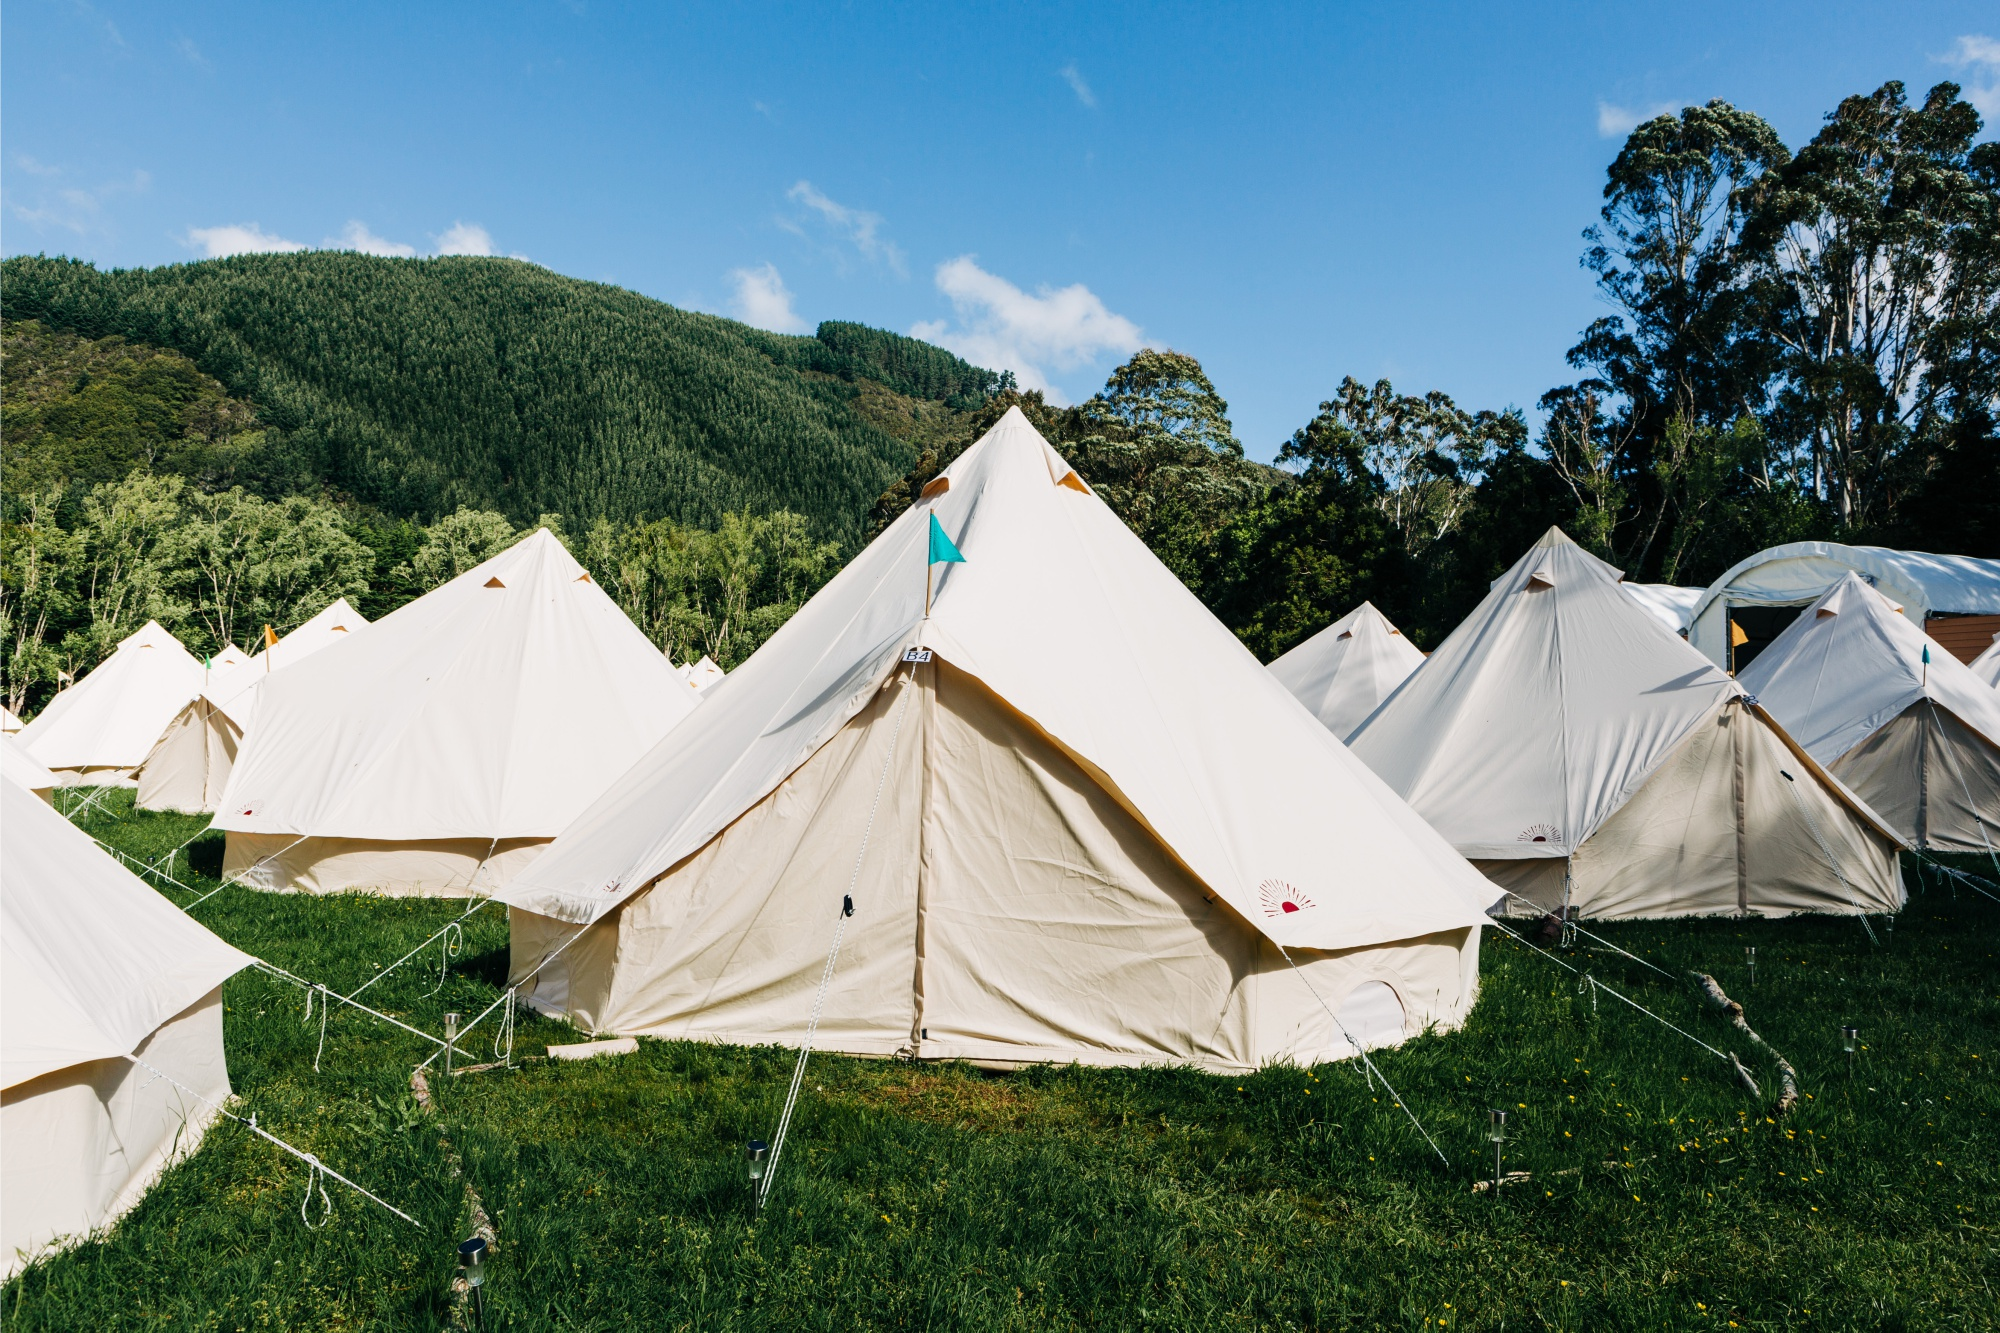 New Zealand Visa Requires Positive Energy And A Week In A Yurt Bloomberg Yurtnewzealand.co.nz is tracked by us since november, 2019. new zealand visa requires positive